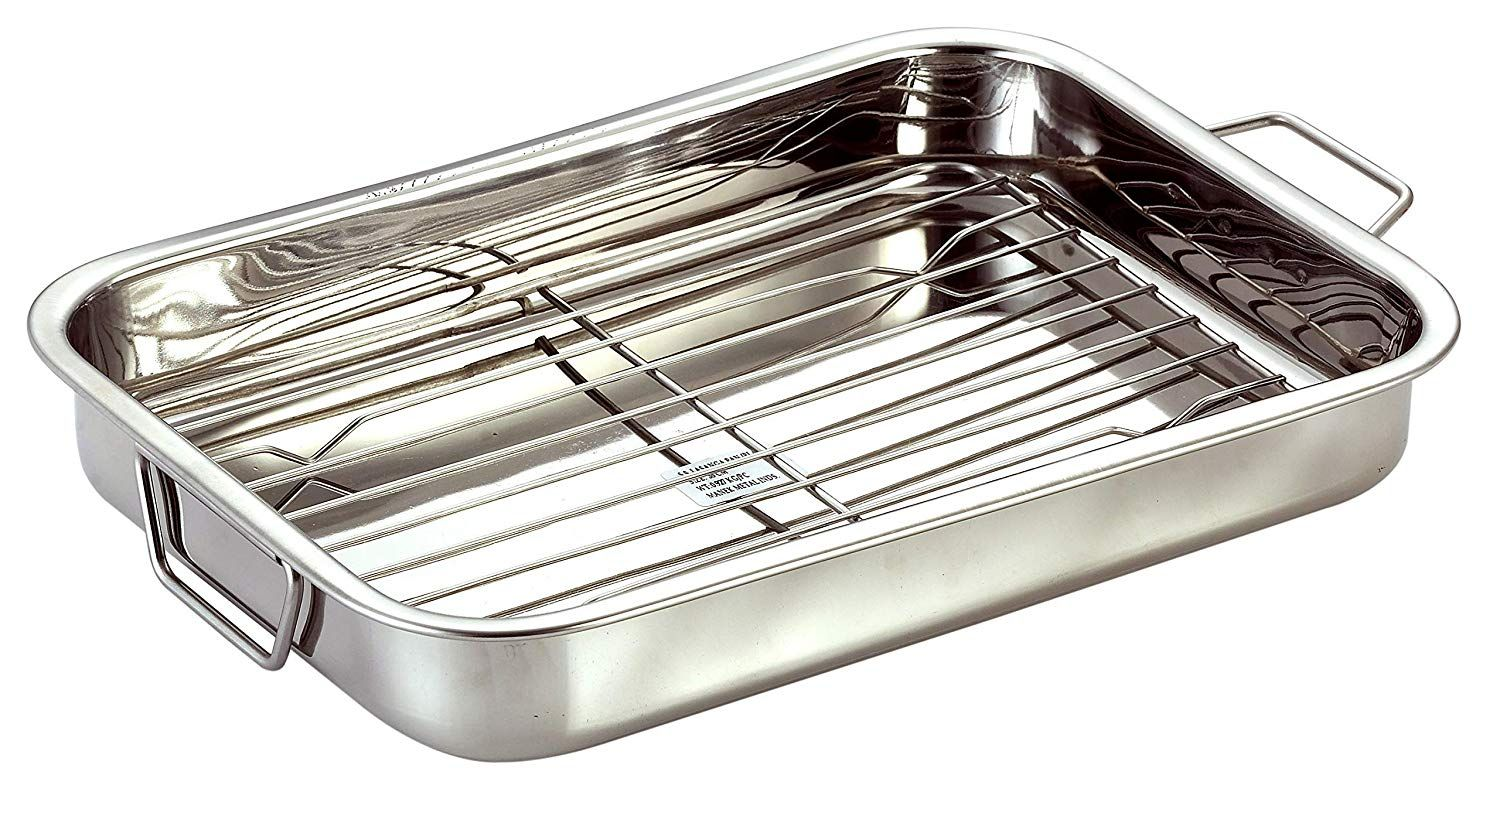 Stainless Steel Roast Pan With Grill Rack And Folding Handles Chef Direct Rectangular Lasagna Pan For Baking Grill Grill Rack Roasting Racks Lasagna Pan